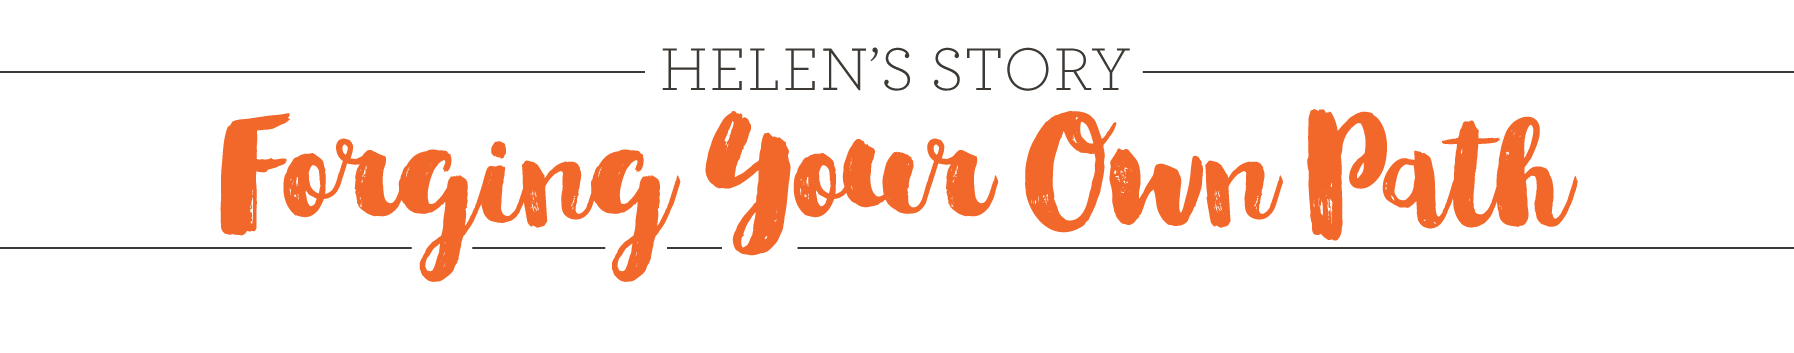 Helen's Story Forging your own Path